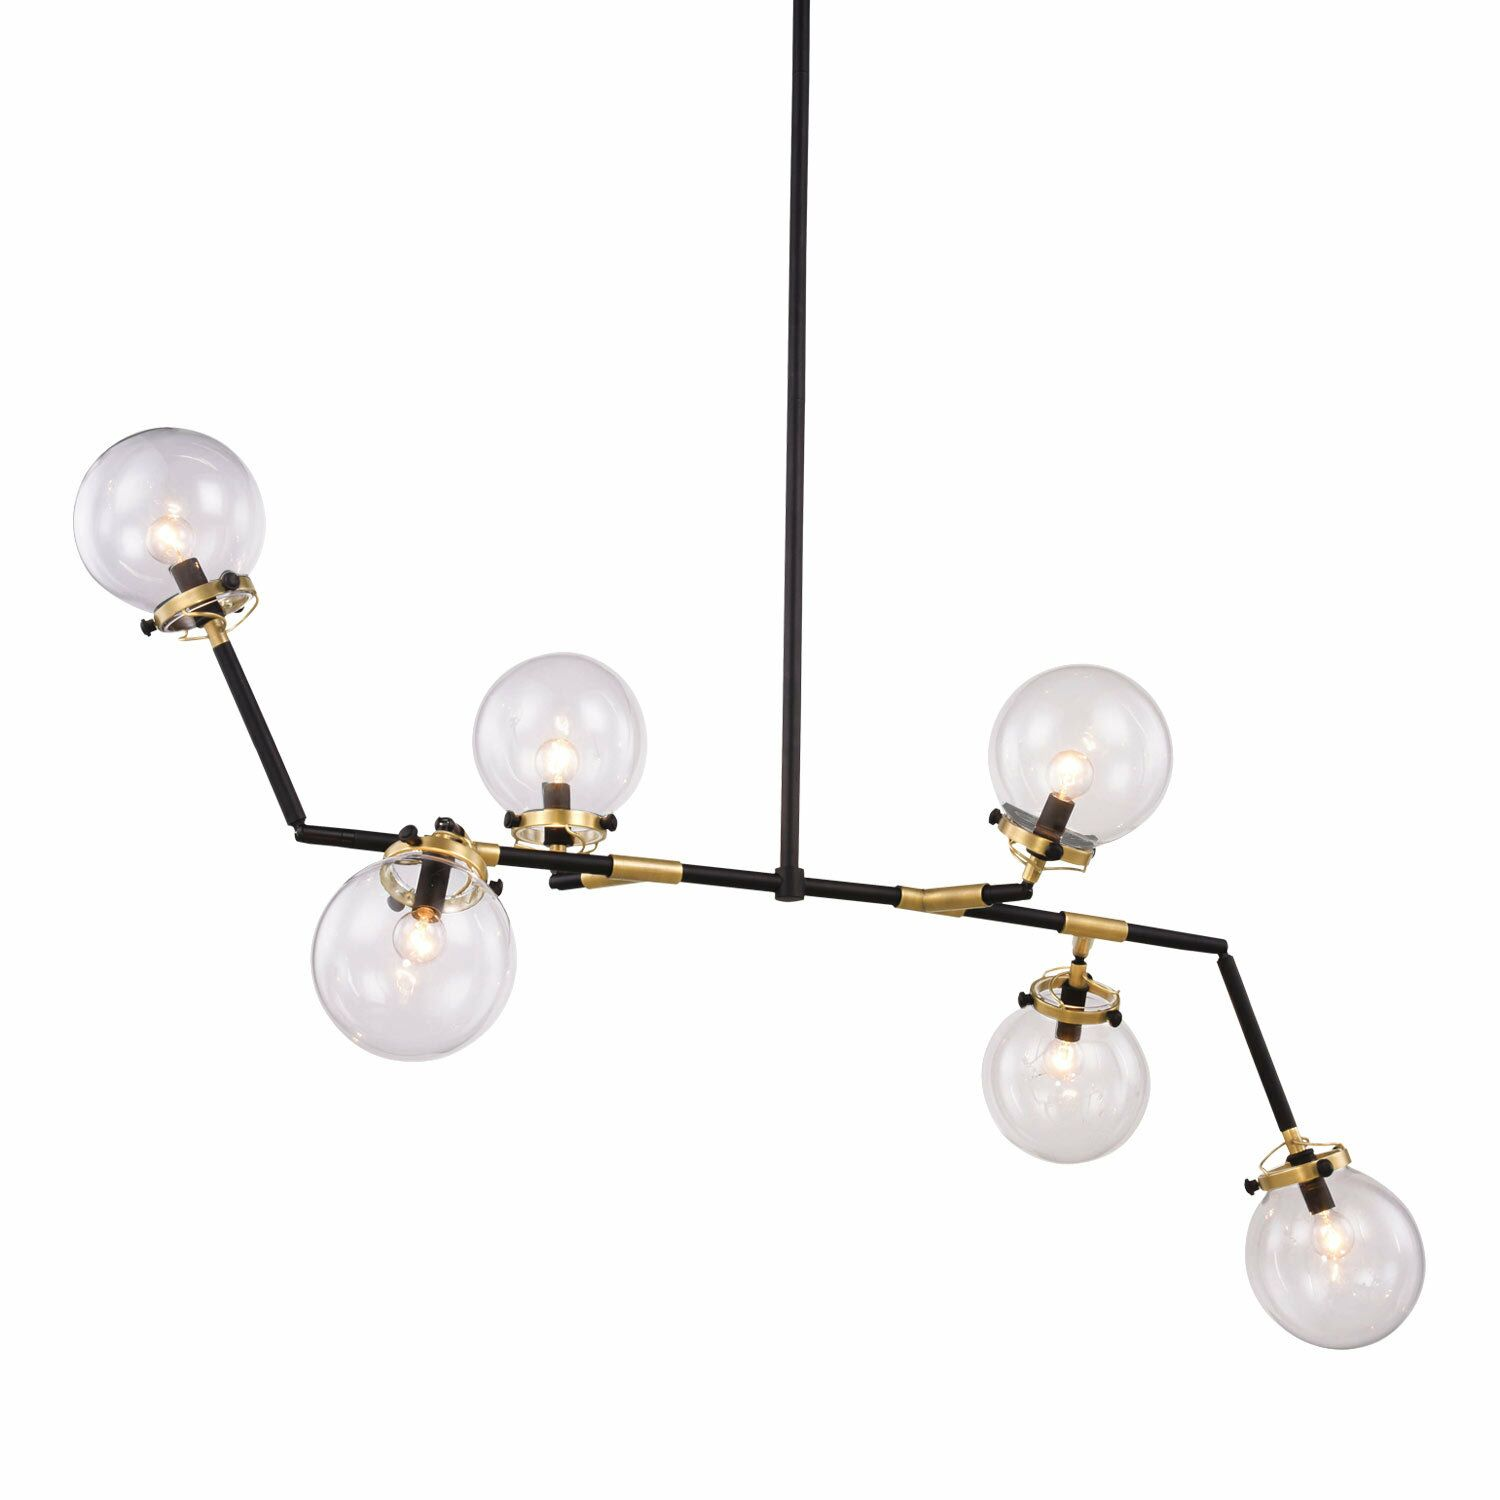 Chairez 6-Light Chandelier Finish: Burnished Brass